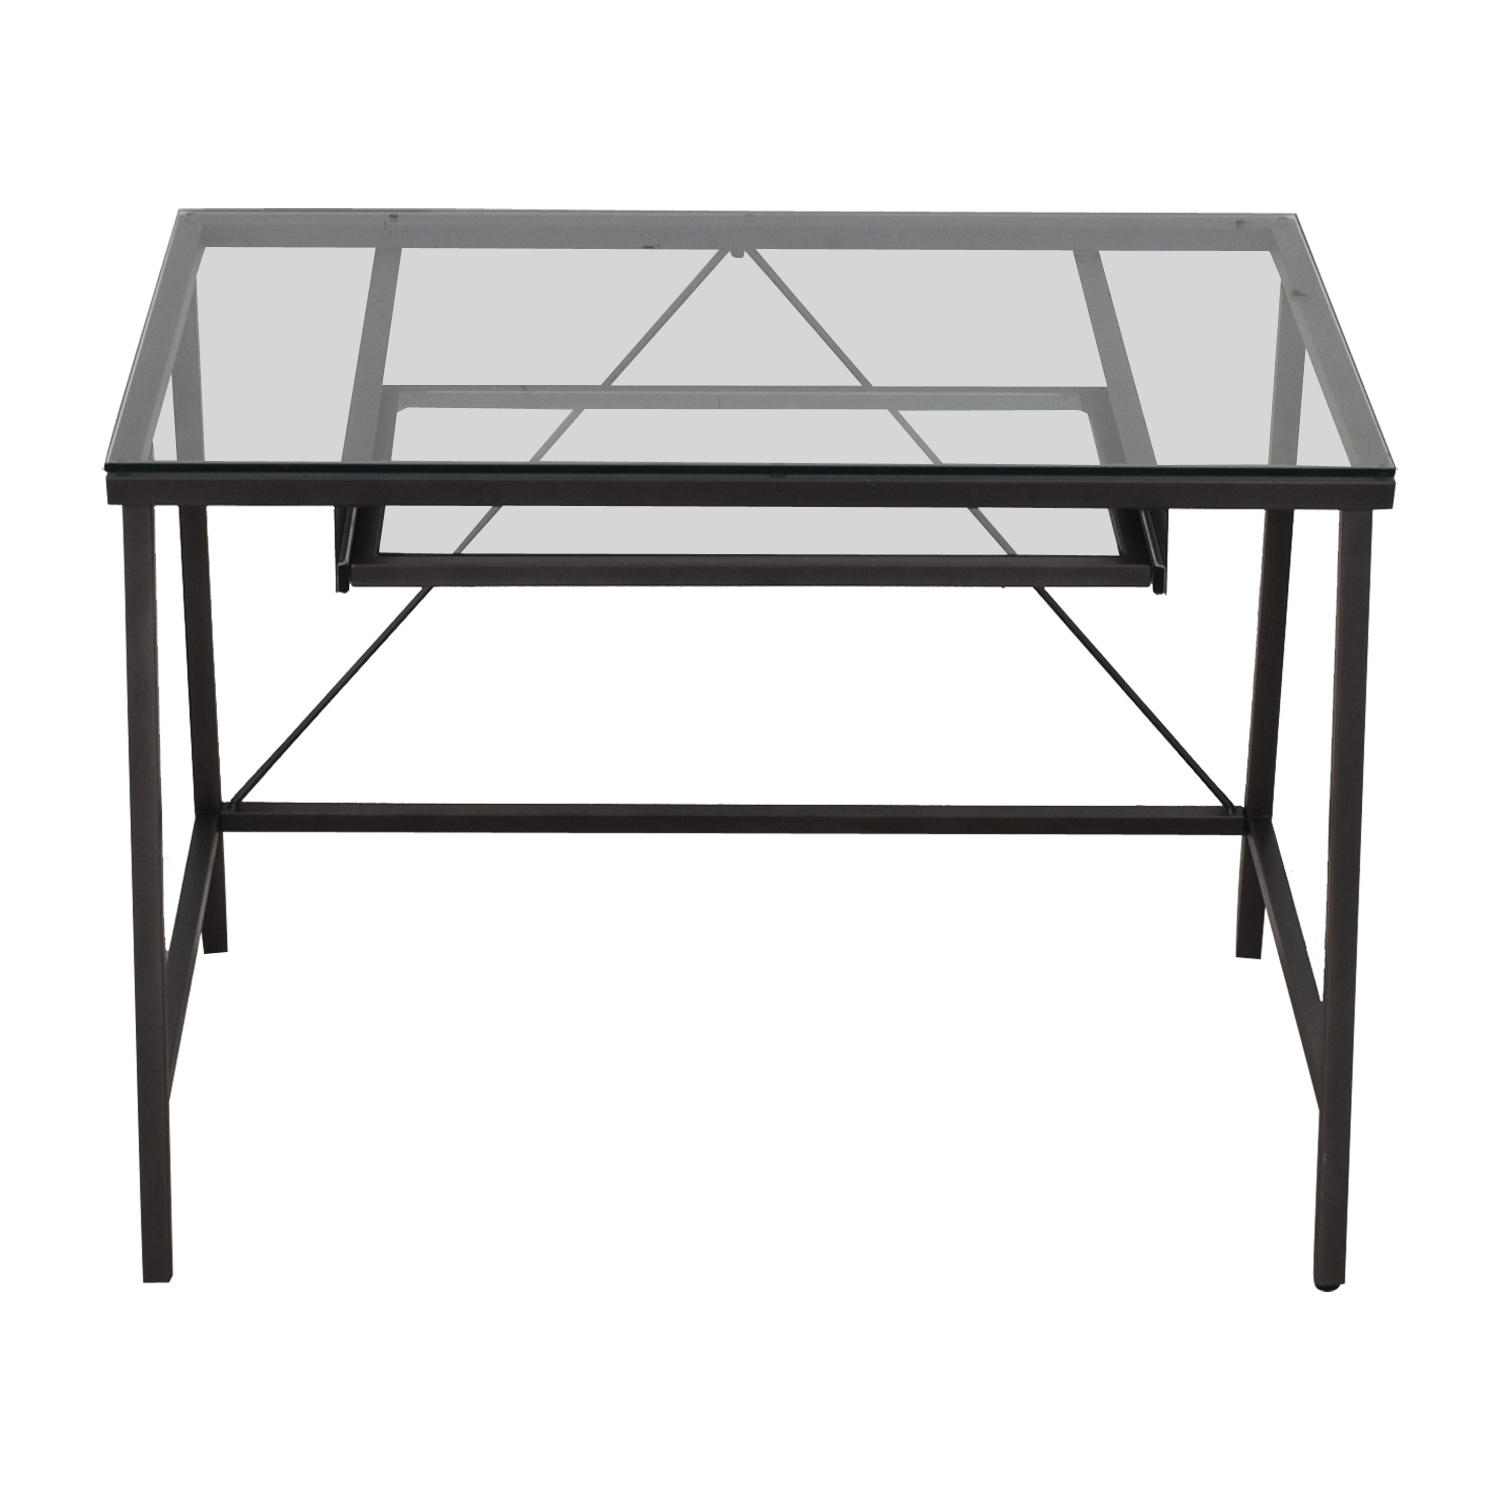 CB2 CB2 Dwight Glass and Grey Desk with Keyboard Tray nj